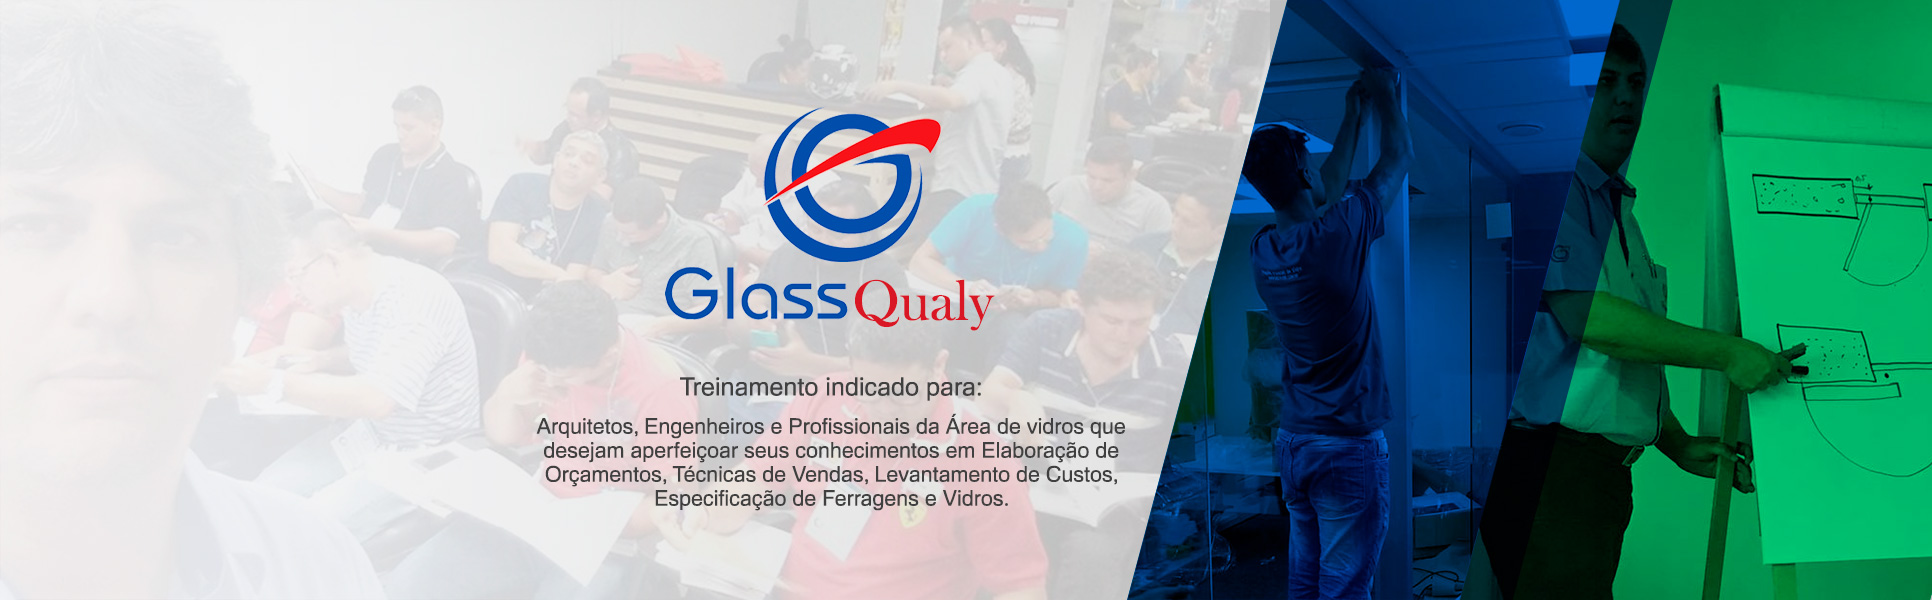 GlassQualy